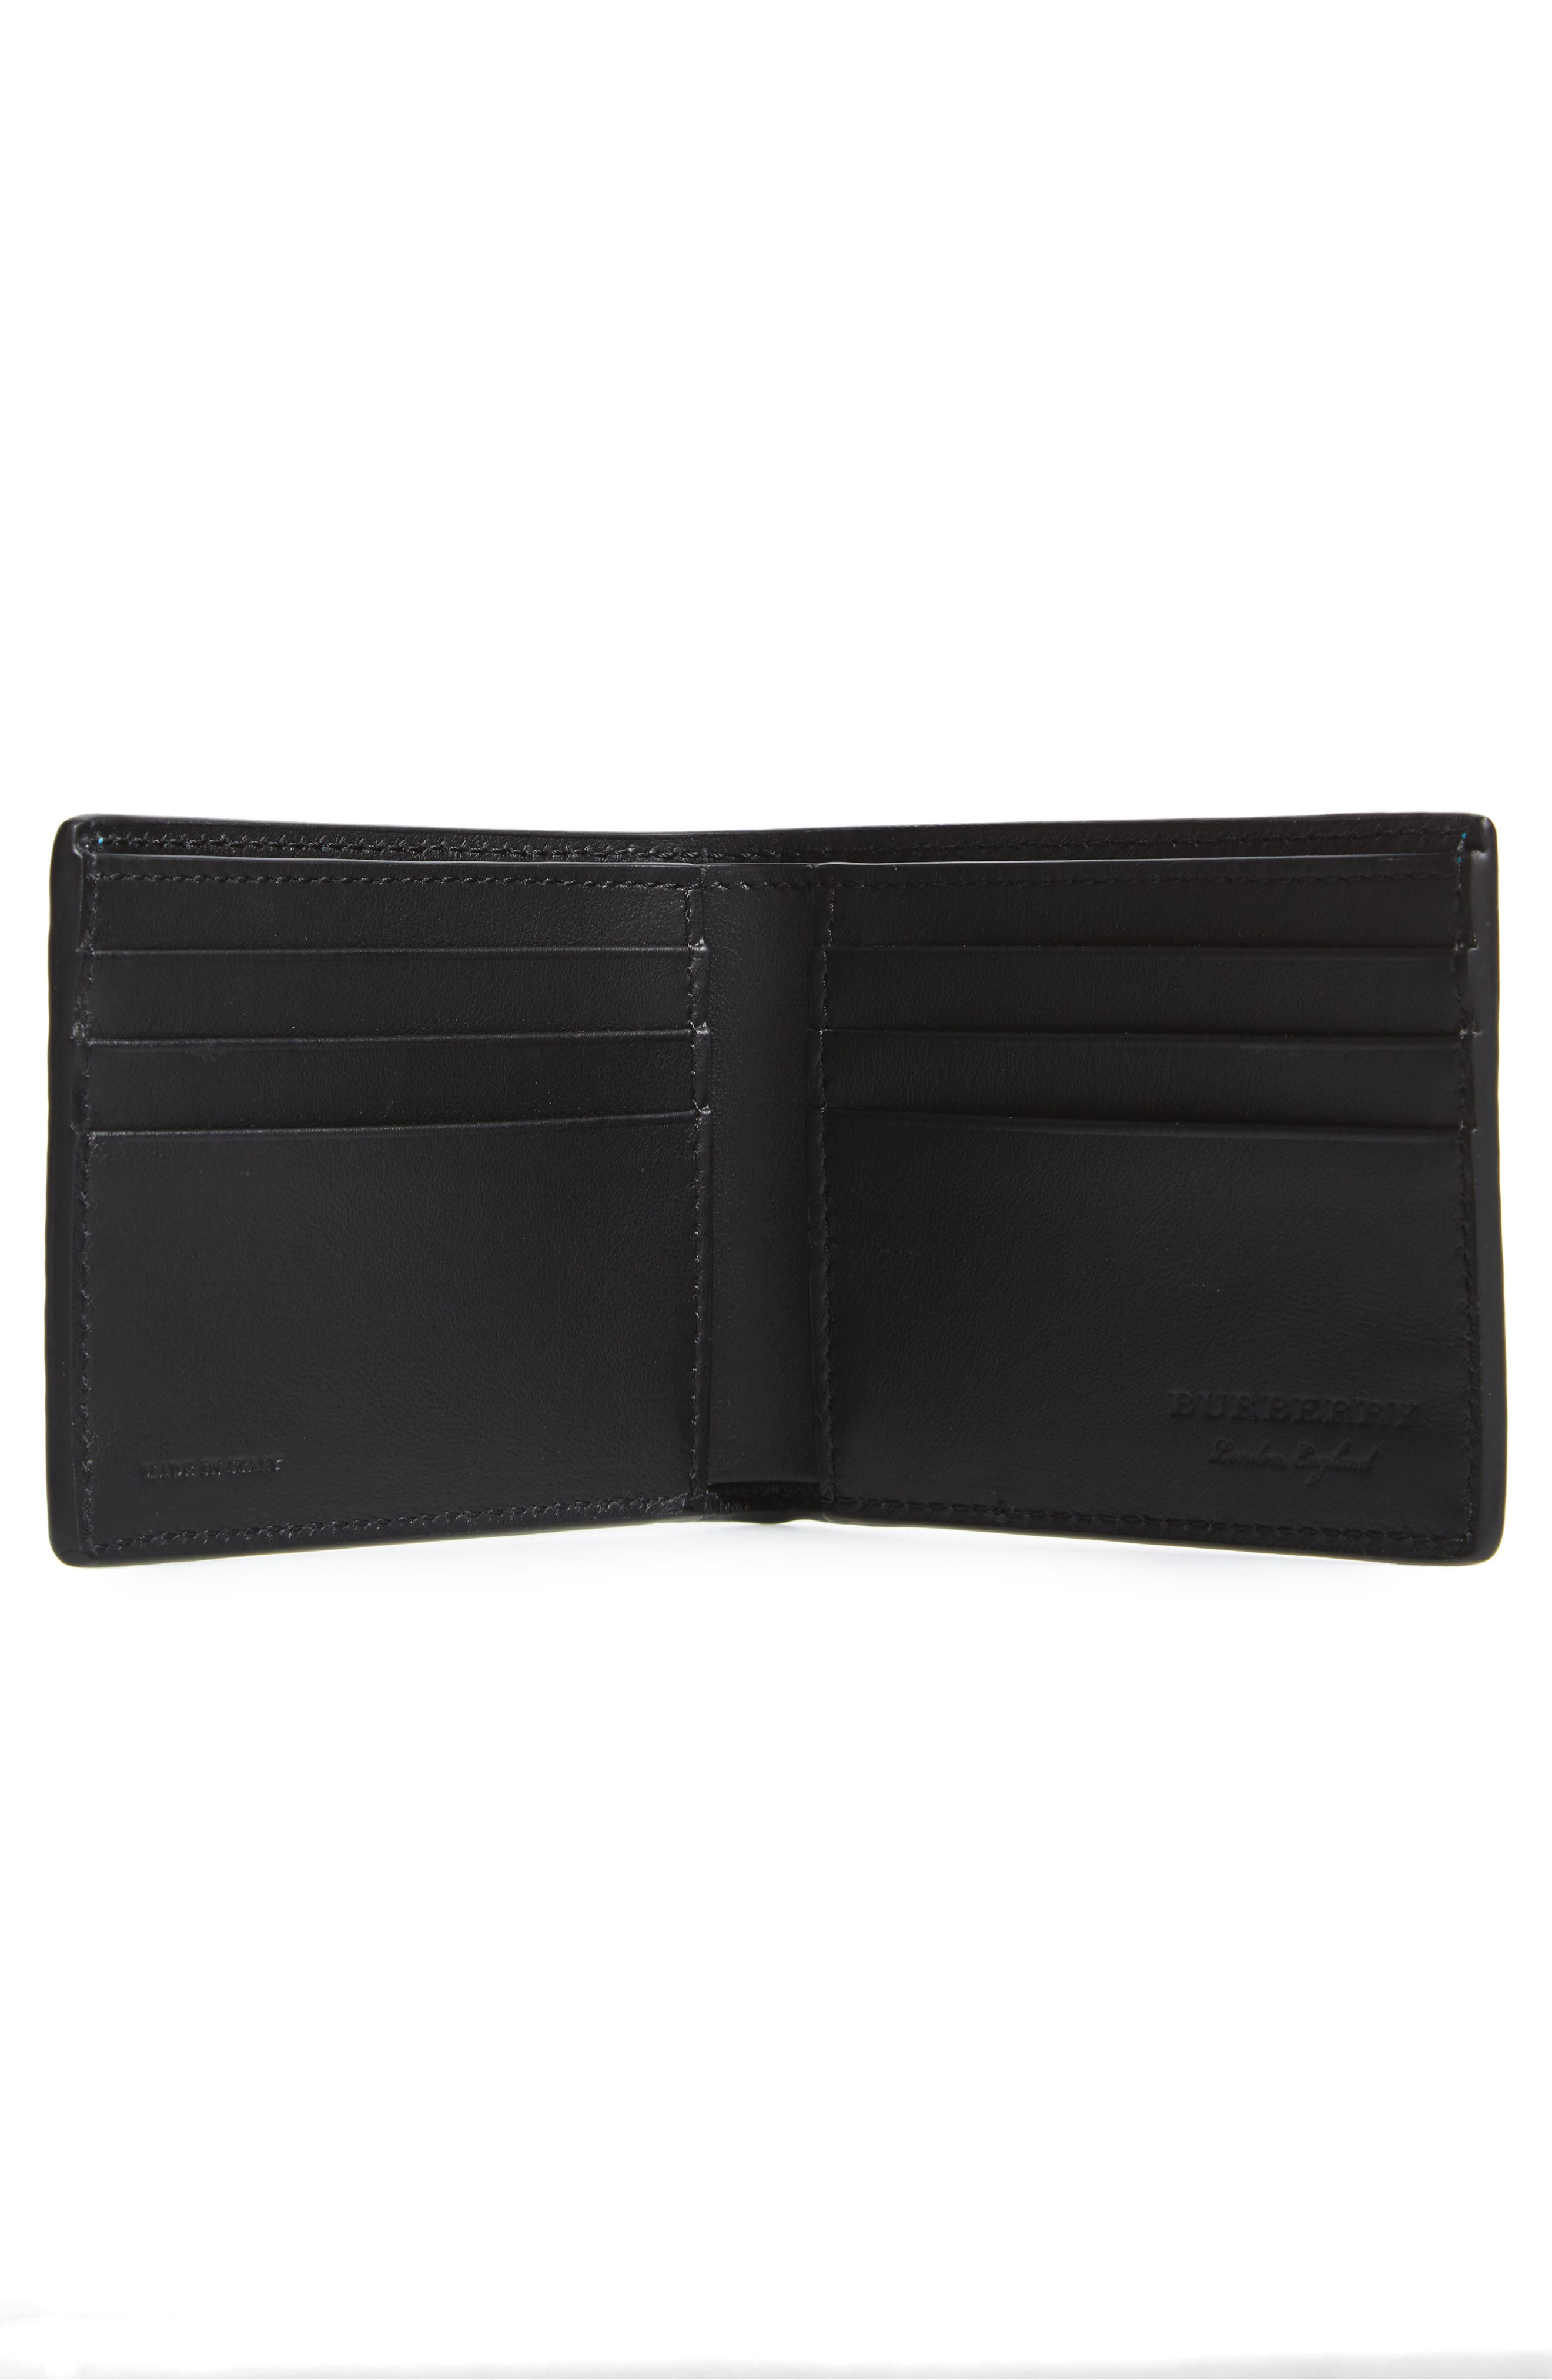 Leather Bifold Wallet,                             Alternate thumbnail 2, color,                             437